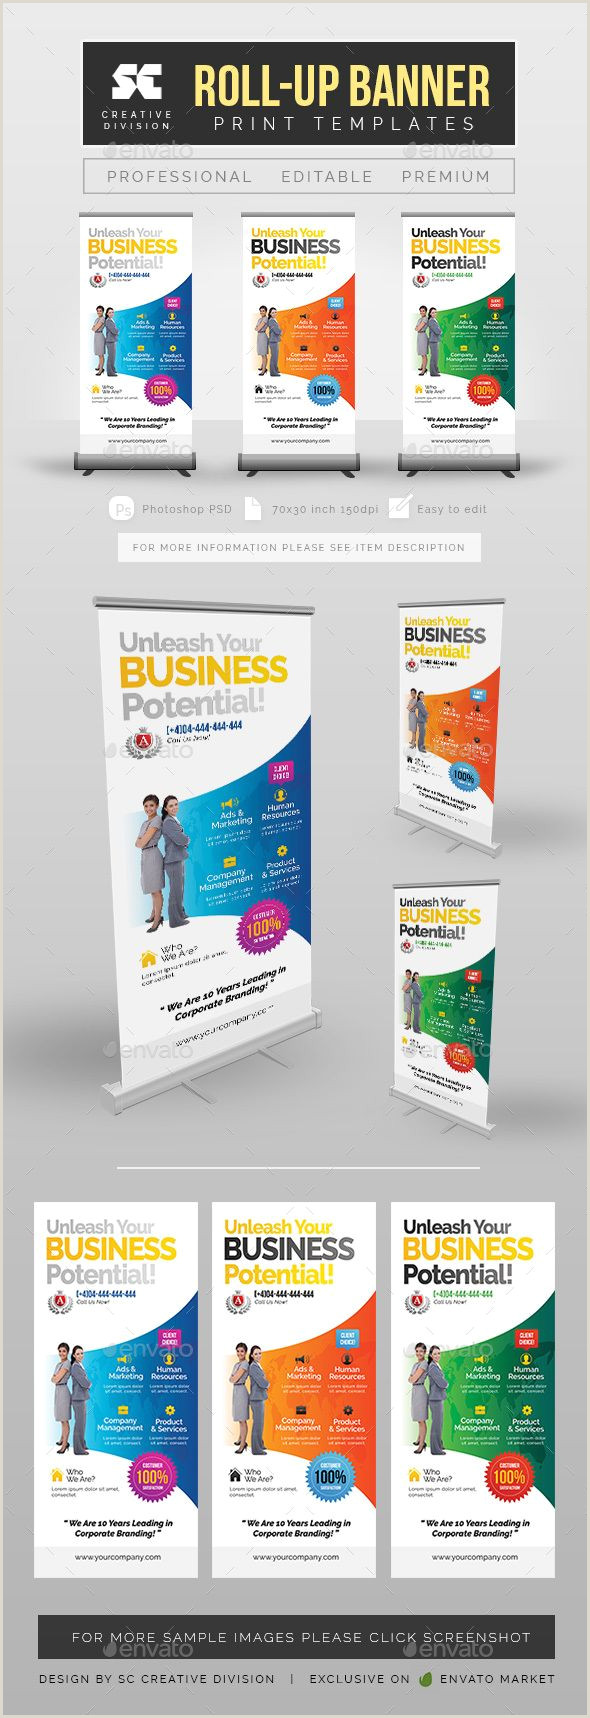 Retractable Banners Printing Bud Roll Up Banner